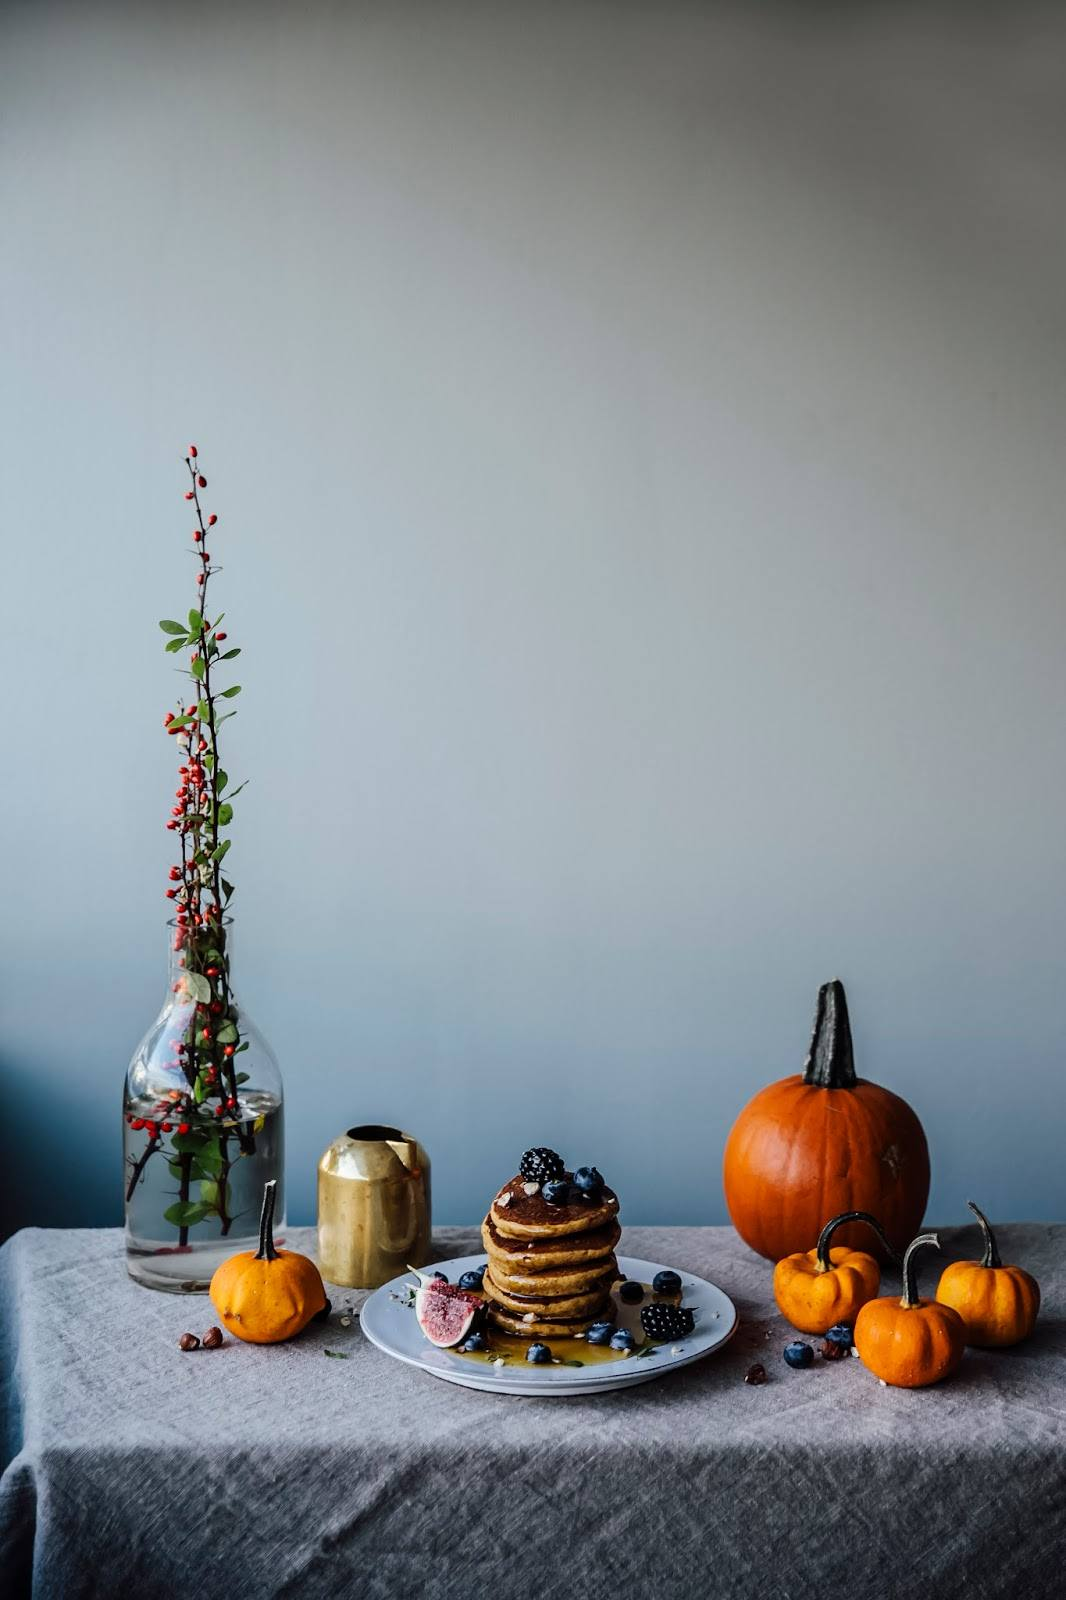 Gluten-free Pumpkin Pancakes, a gluten-free Pear-Lingonberry Cake & a Day in the Electrolux grandcuisine Kitchen in Stockholm